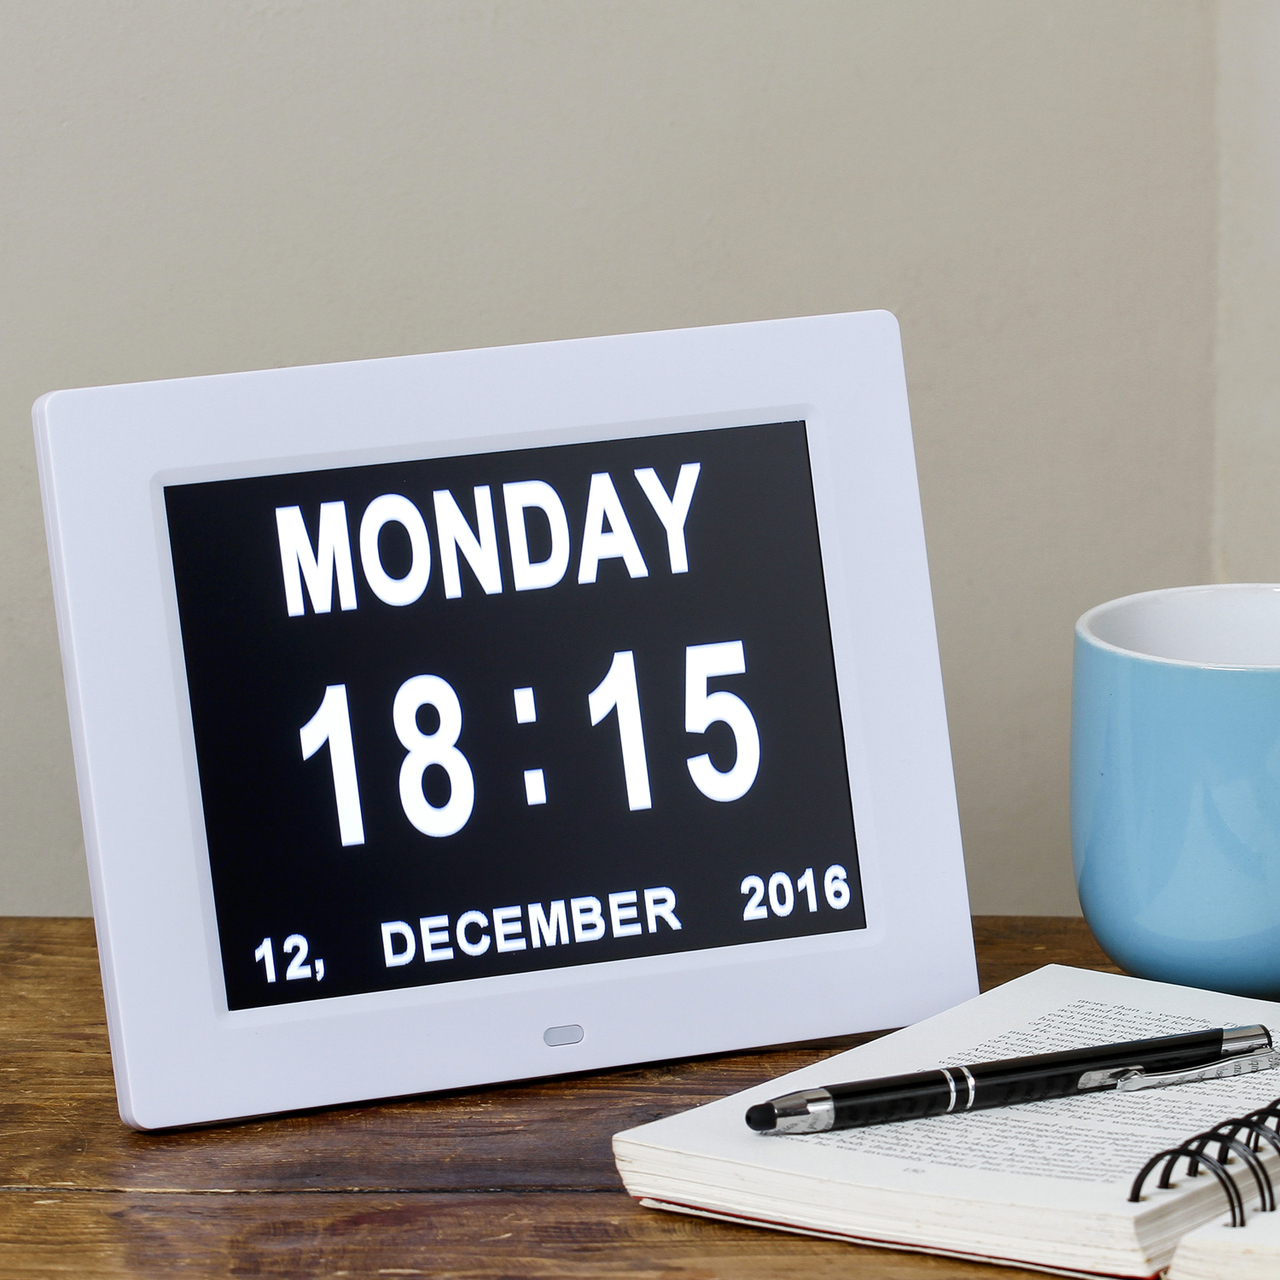 Digital Day Of The Week Clocks With Date Amp Time For The